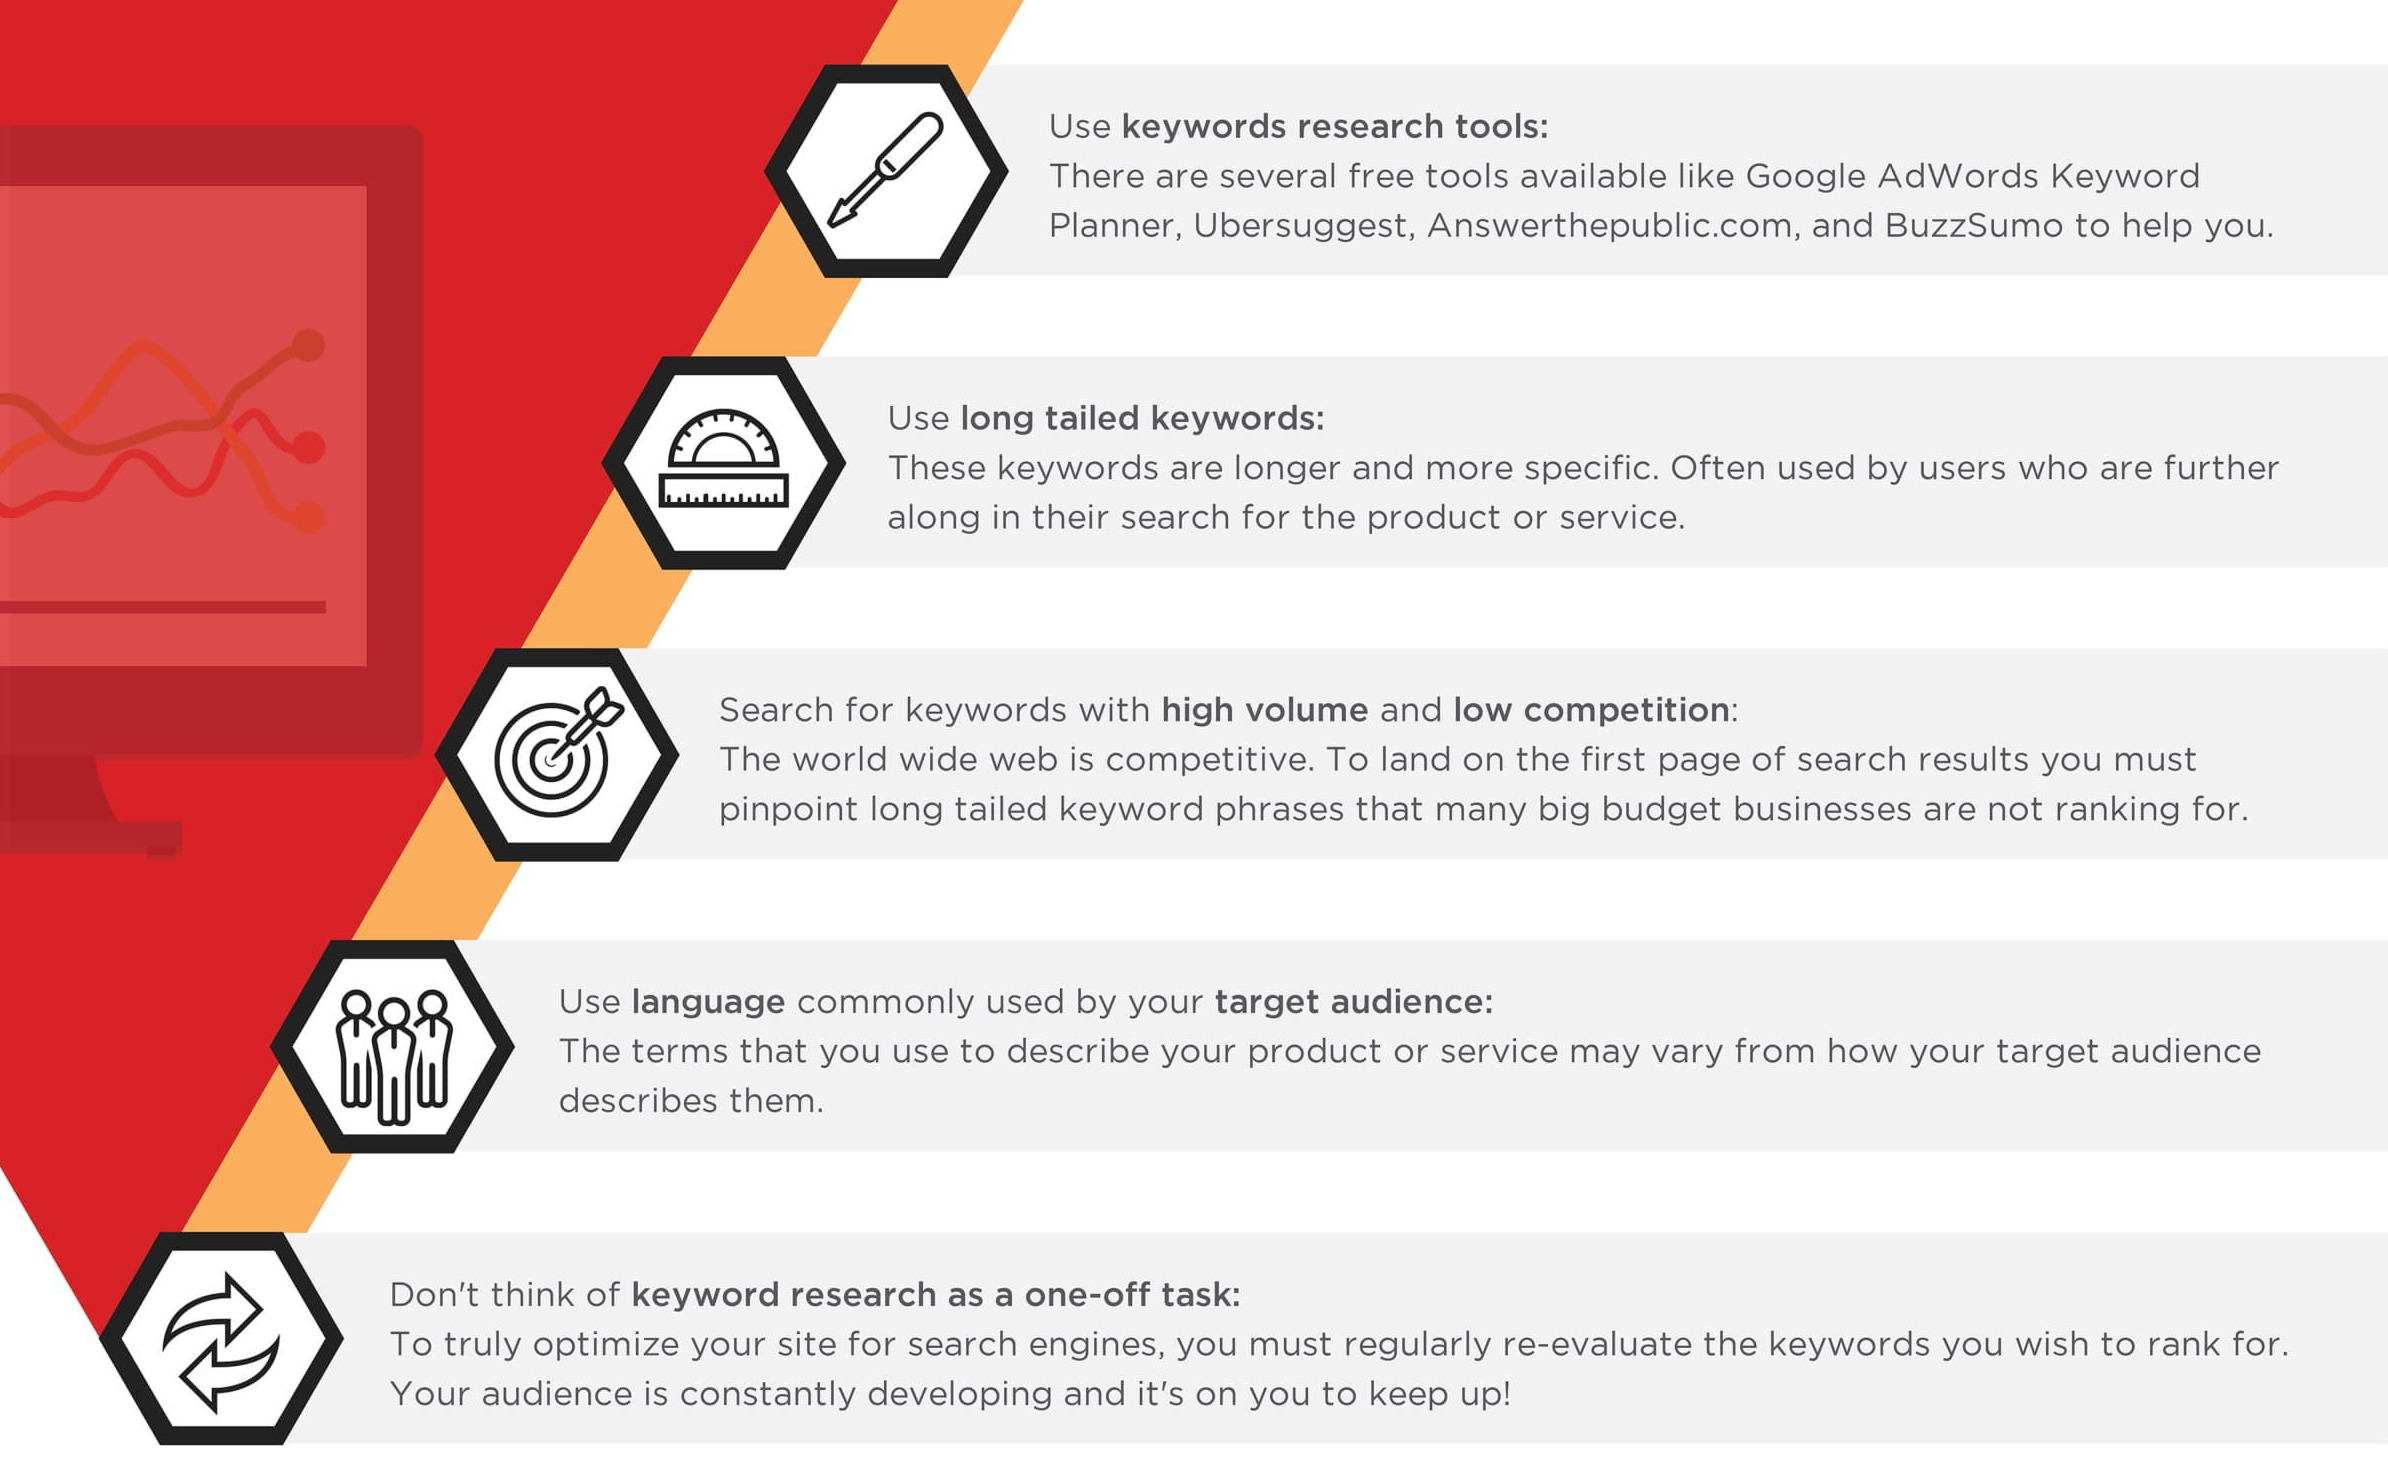 Detailed Keyword Research Based On Target Audience